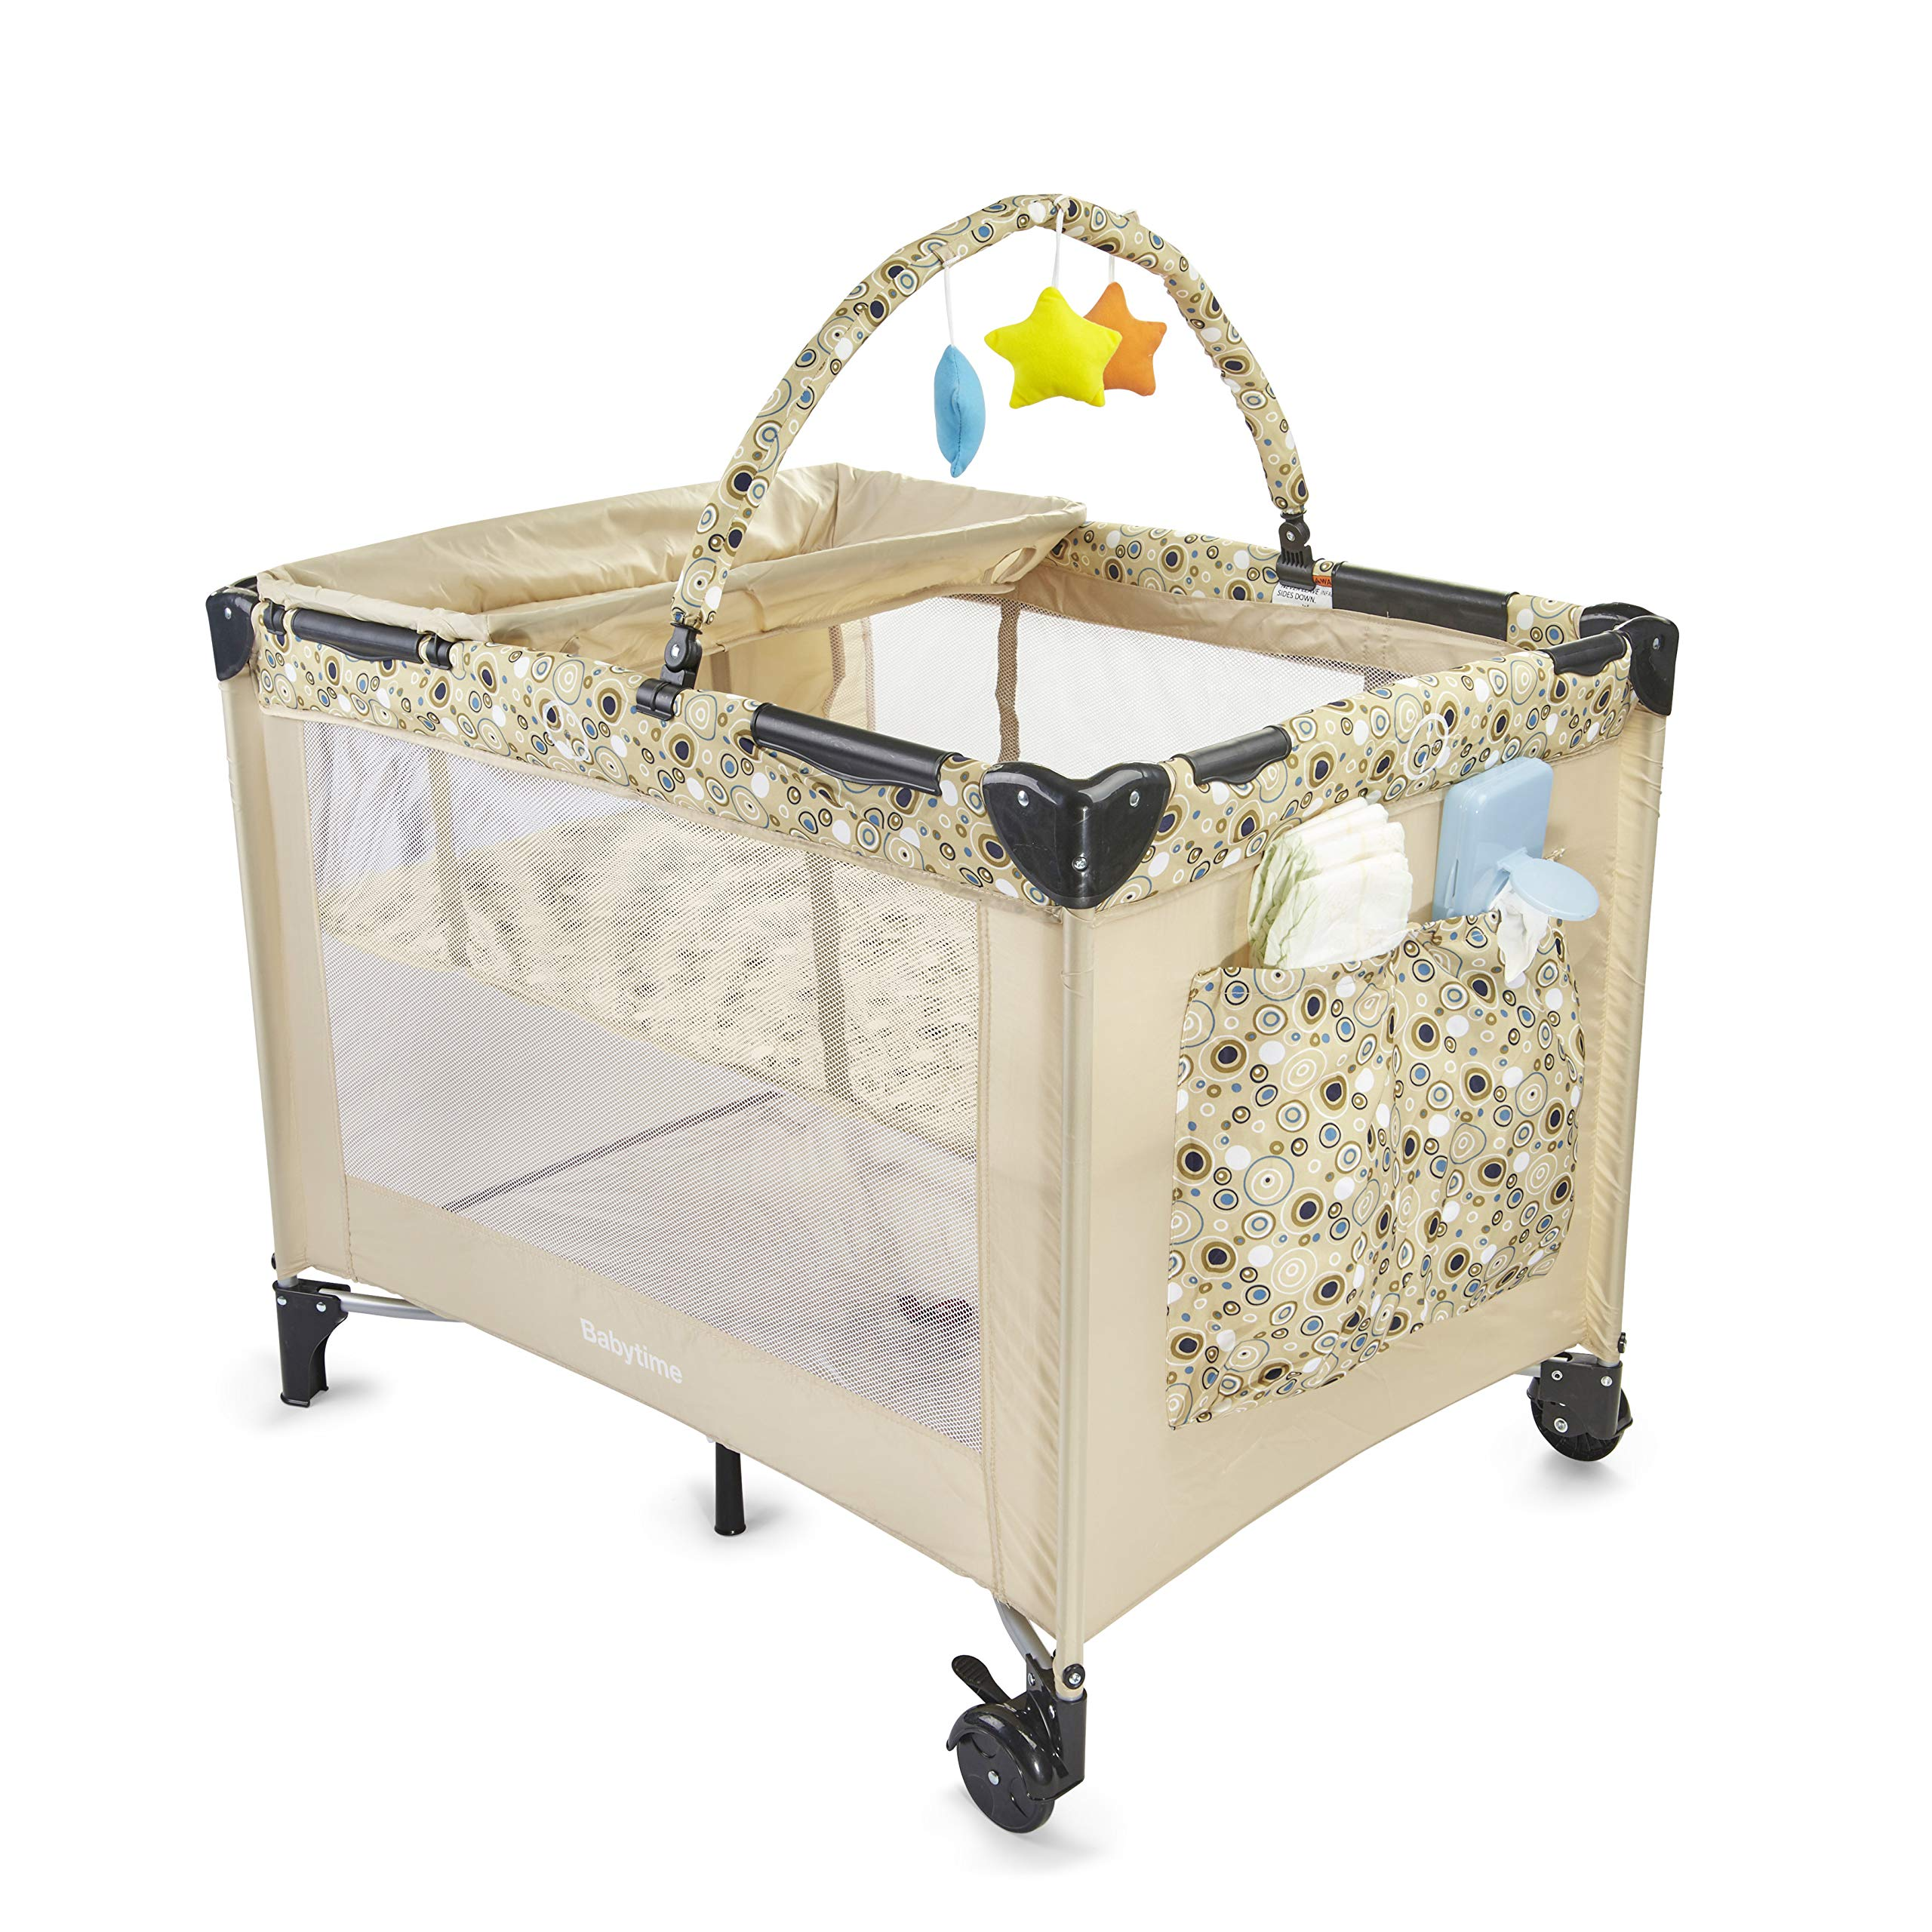 Big Oshi Deluxe Portable Playard - Foldable Nursery Center Includes Carry Bag for Extra Portability and Easy Storage - Lightweight, Sturdy Design, Includes Removable Bassinet & Changing Table, Beige